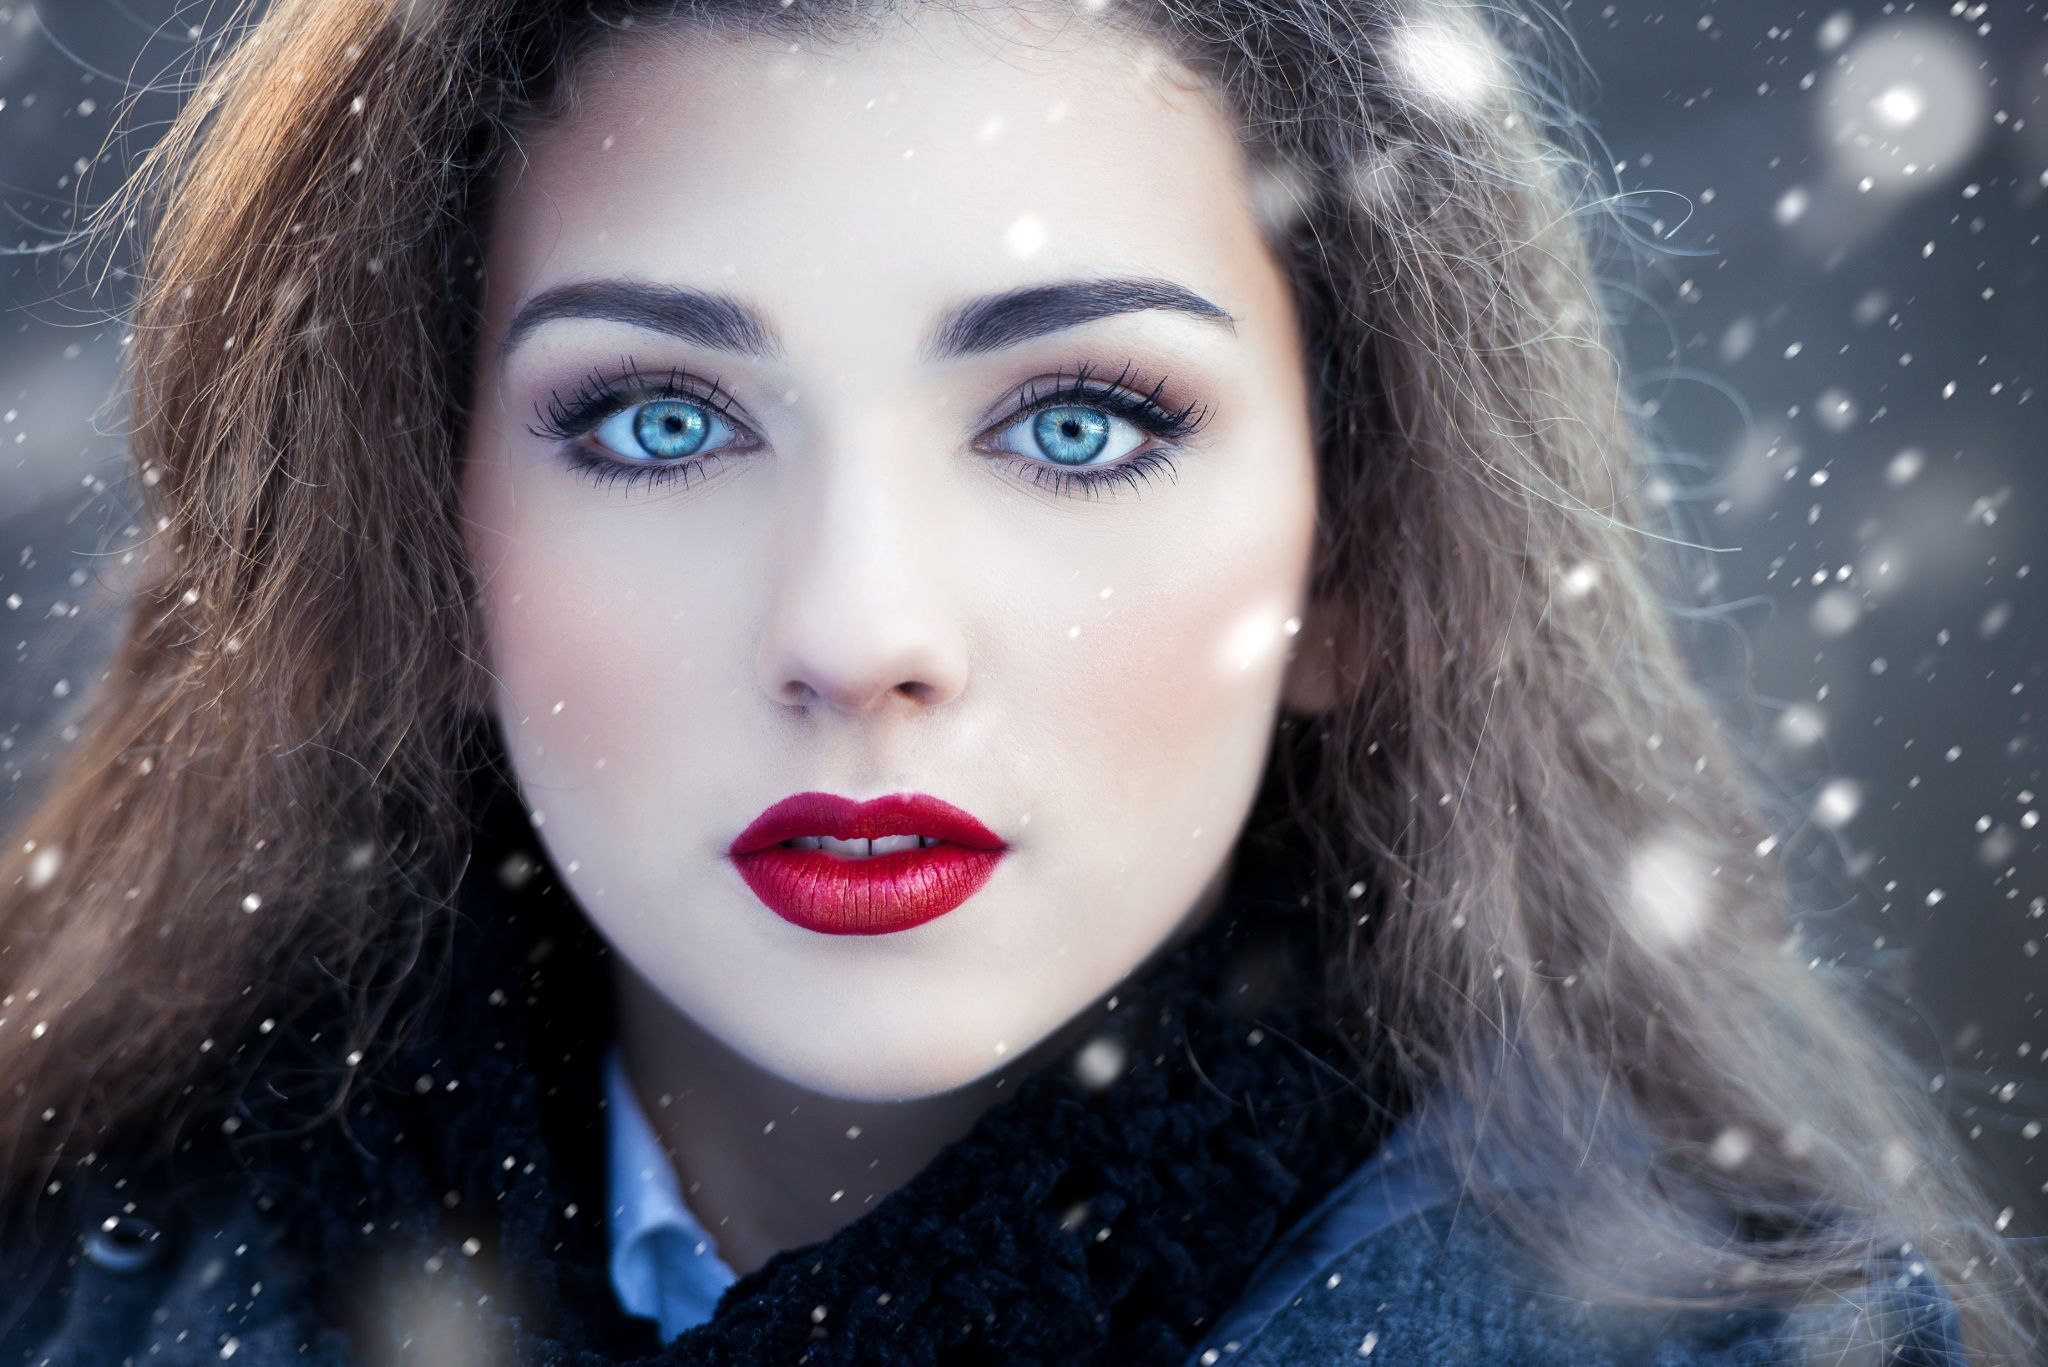 Double nose piercing both sides  Winter portrait by Tijana Morača on px  My favourite potraits